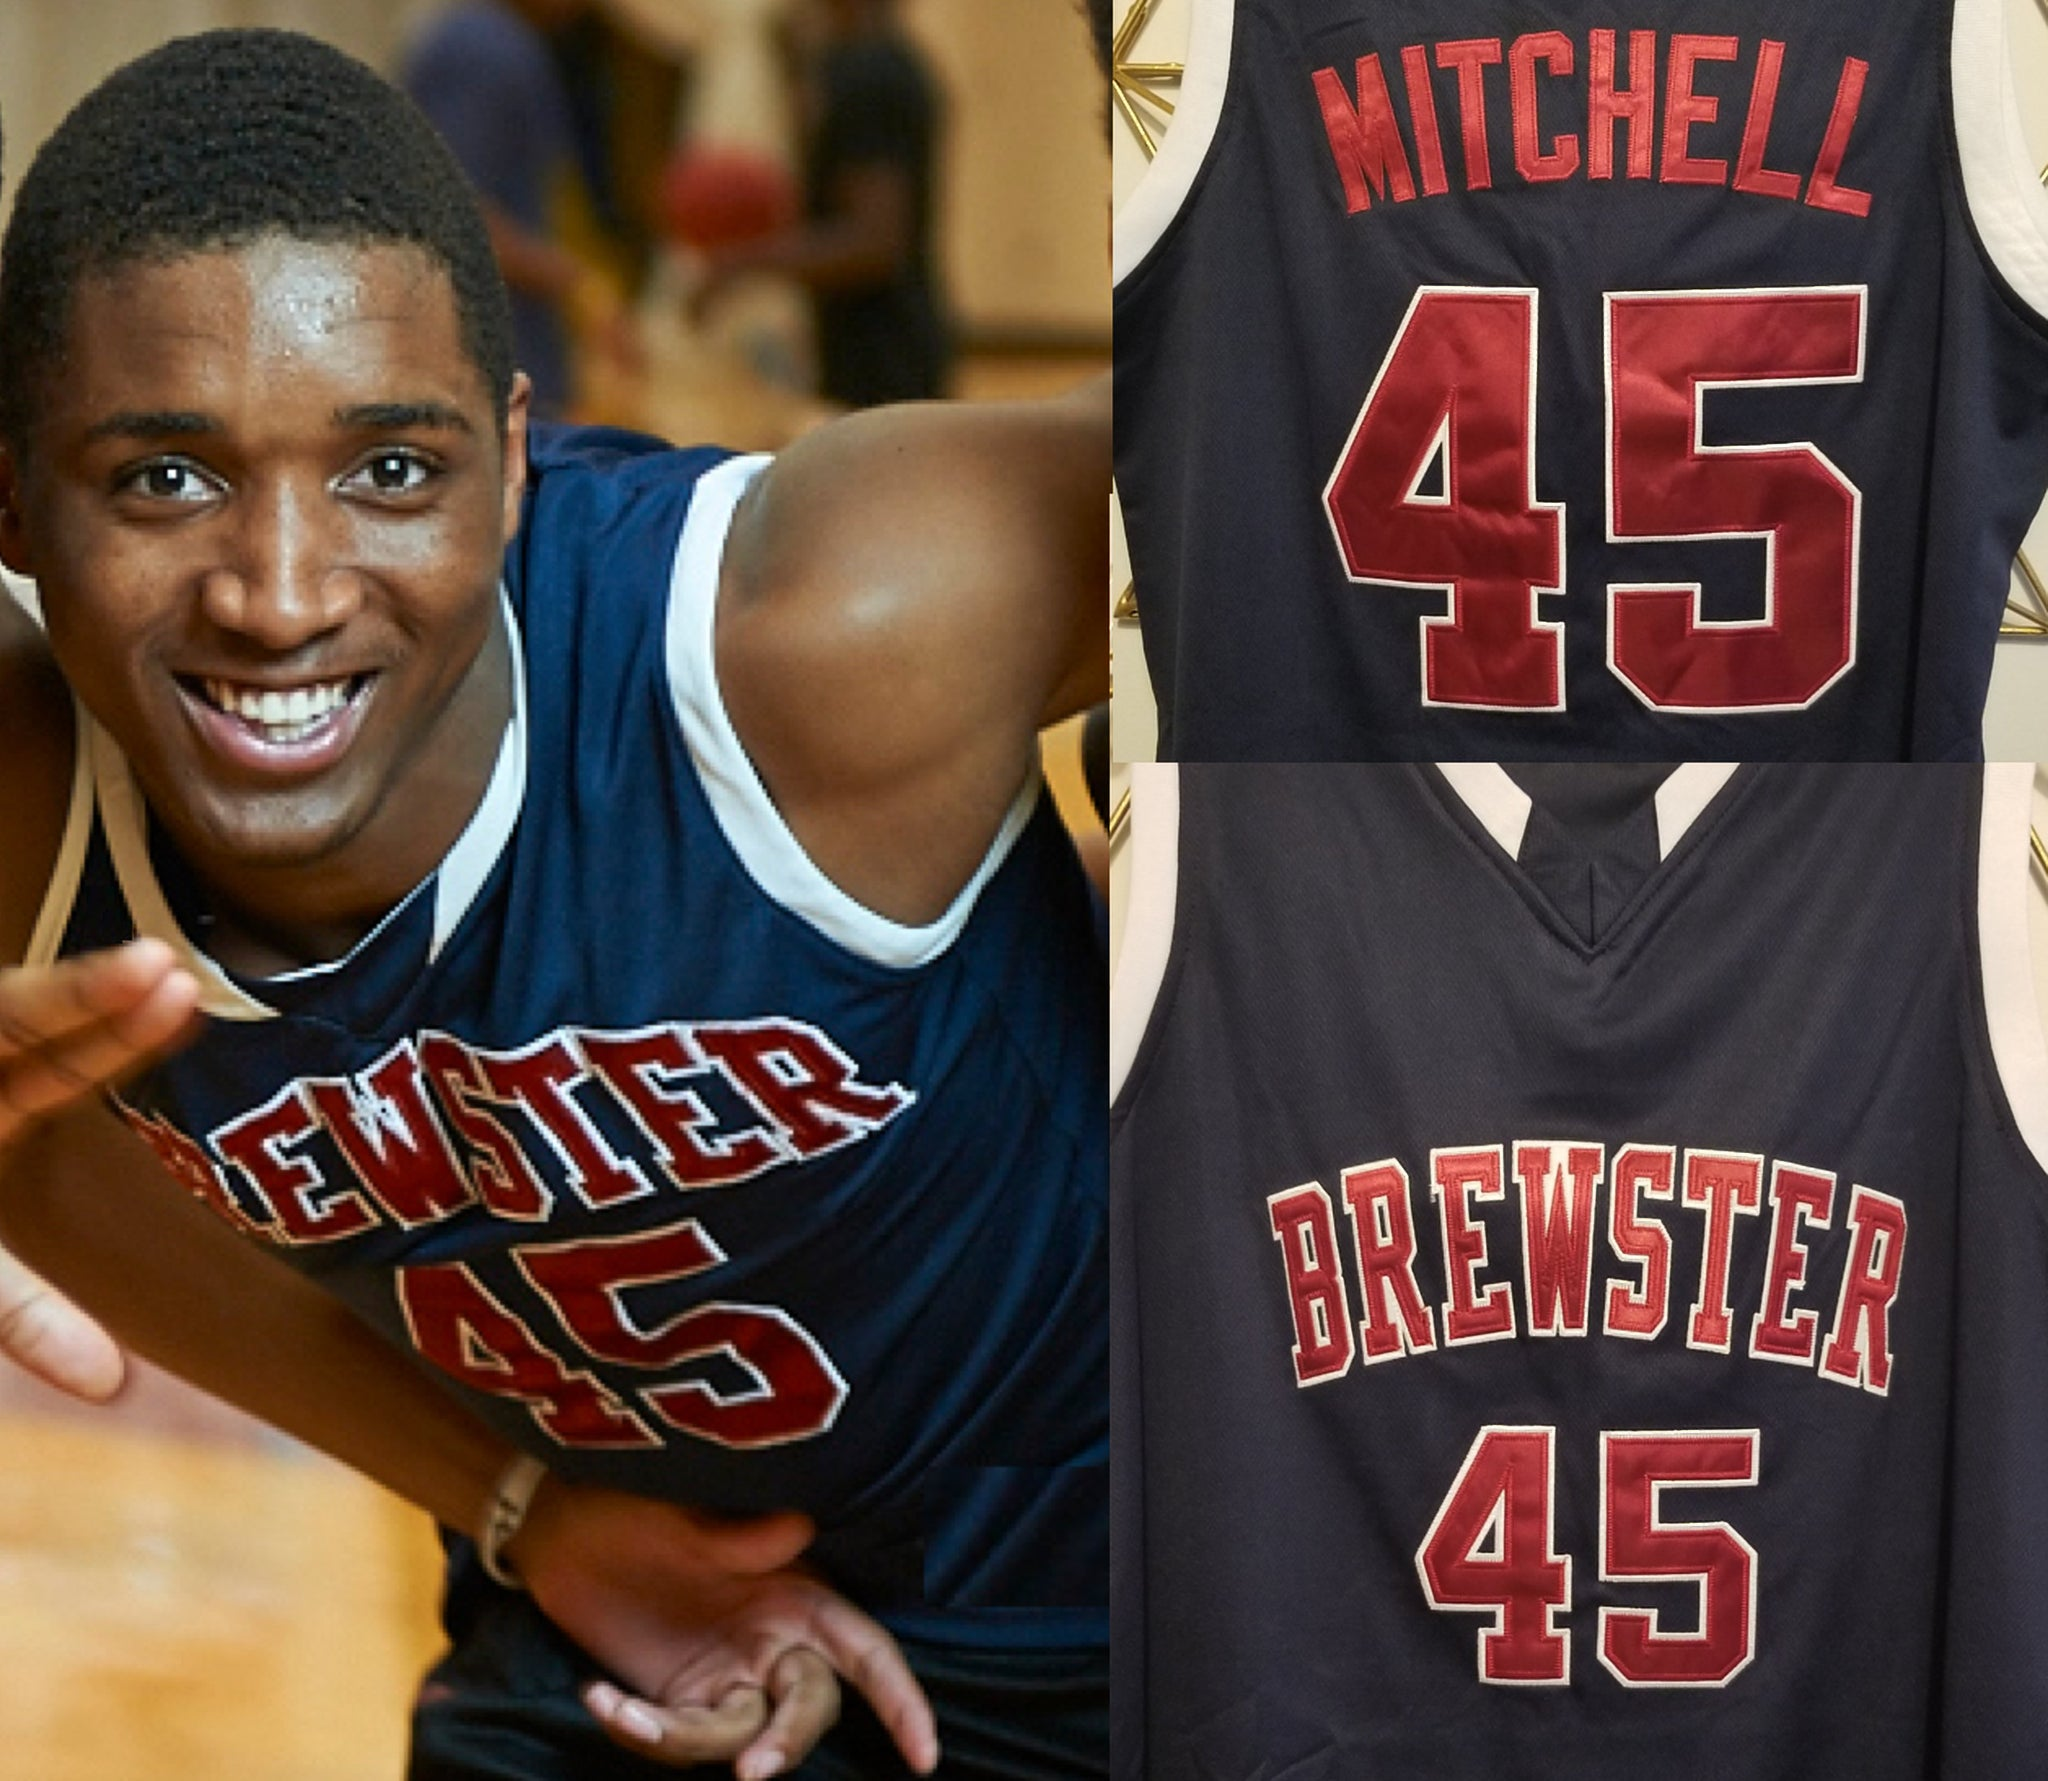 best value 6761e 1a28f Donovan Mitchell Brewster High School Basketball Jersey ...